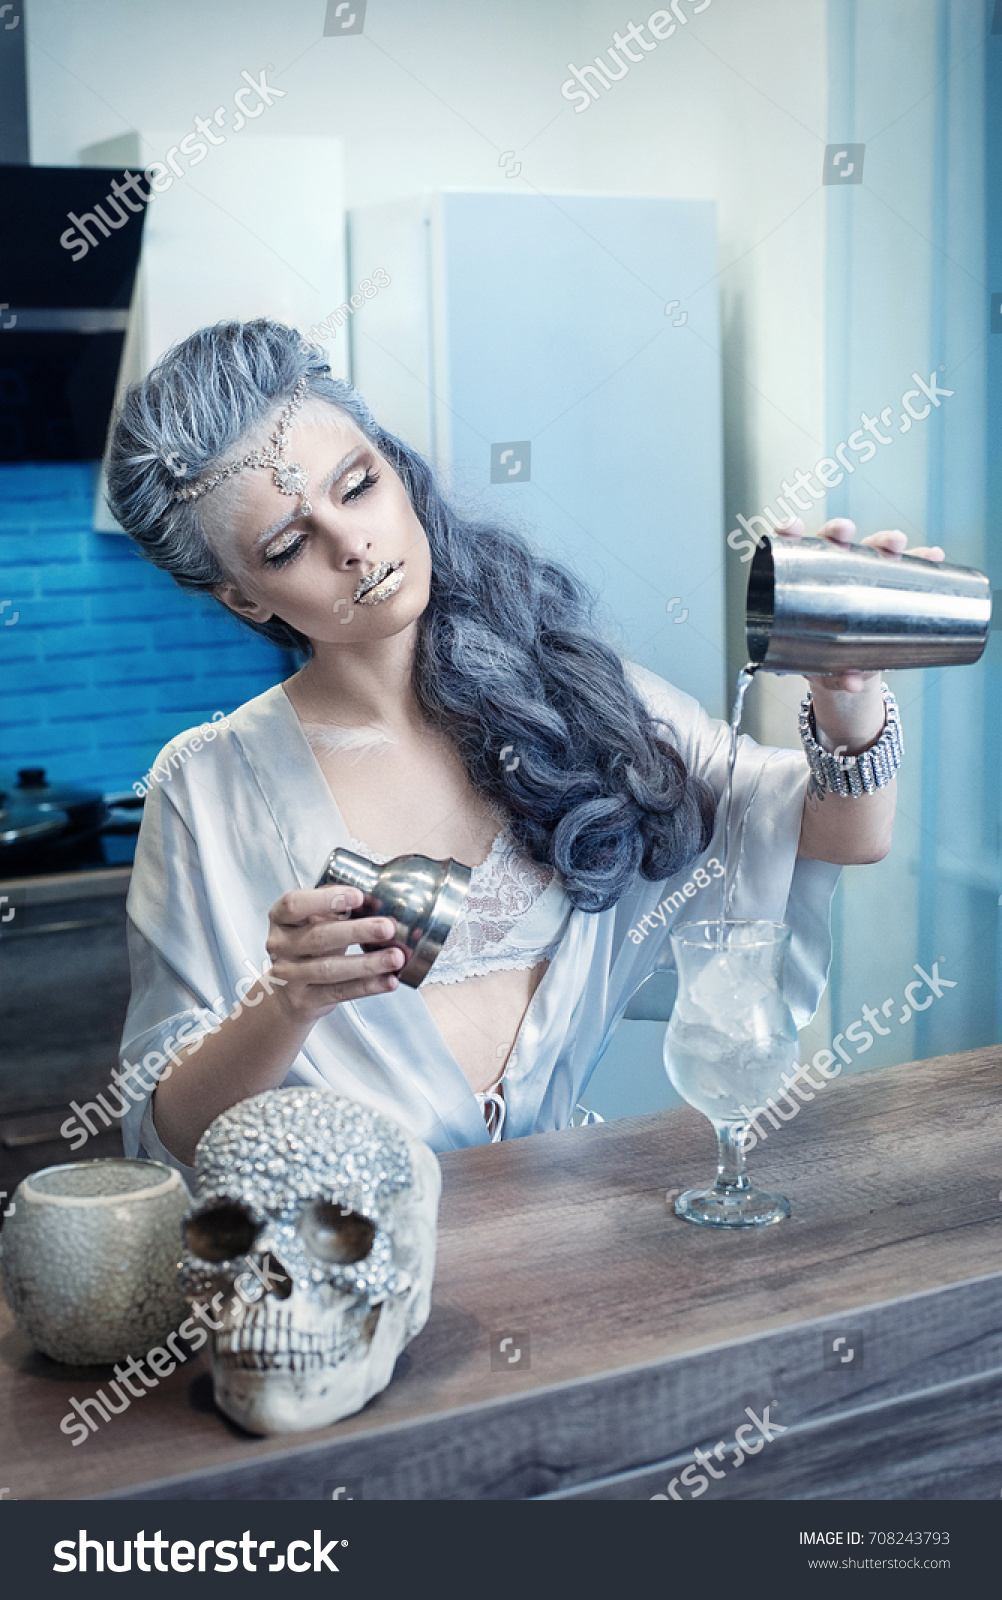 Beautiful Young Woman Image Fairy Tale Stock Photo (Royalty Free ...